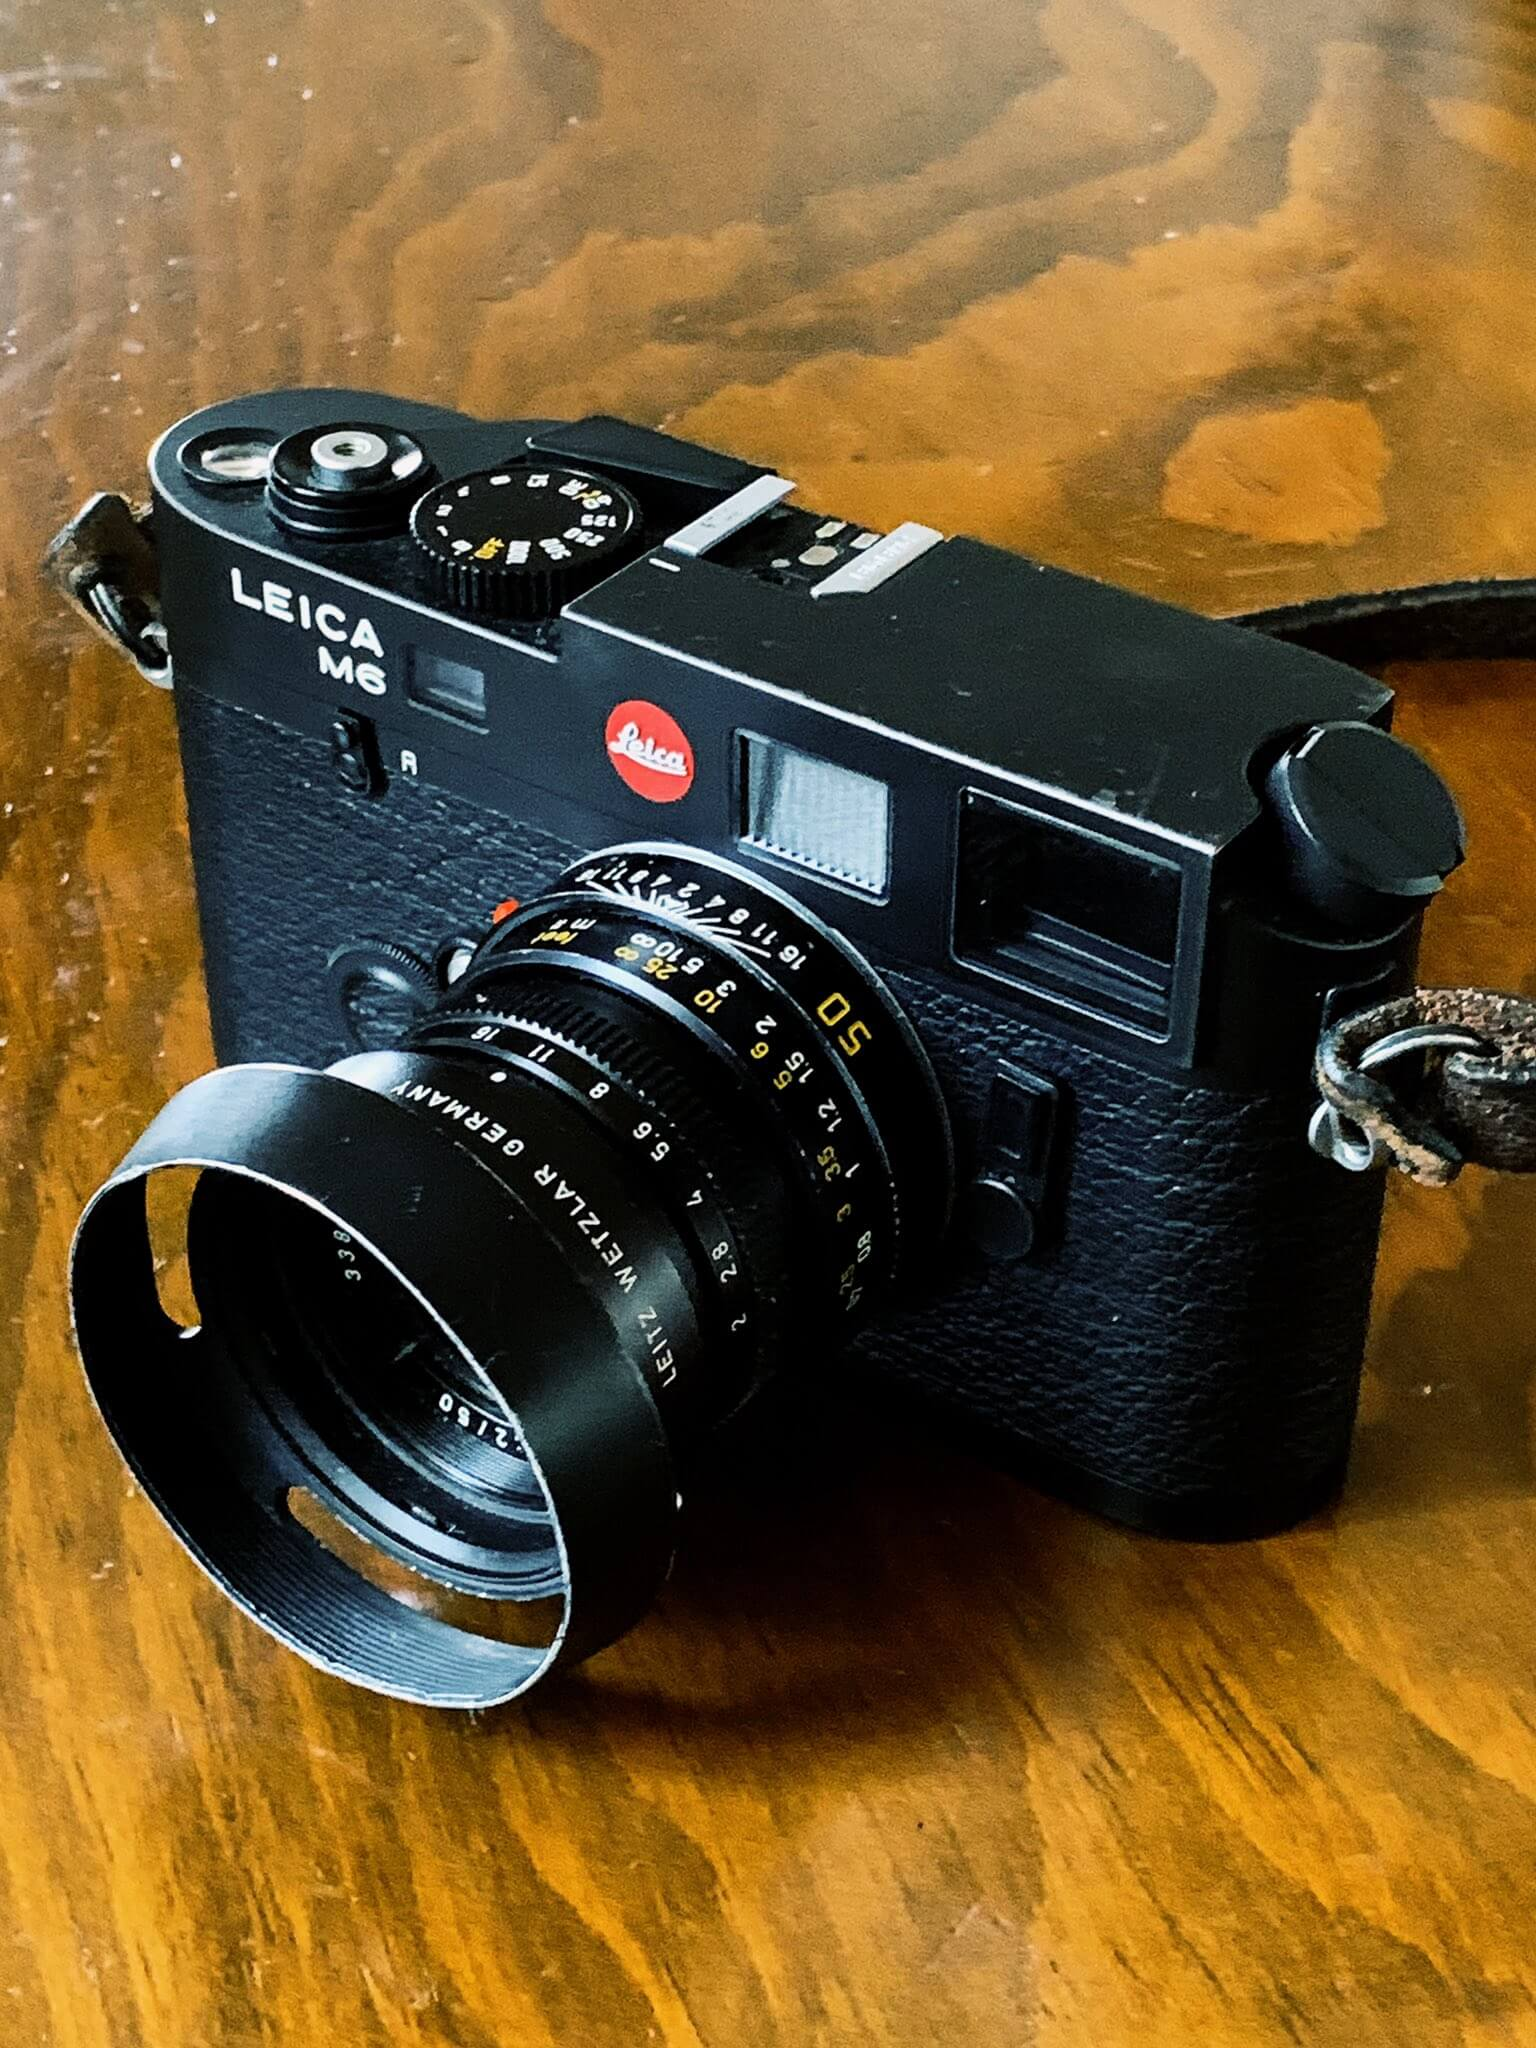 Leica M6 TTL 0.85 and Leica Summicron 50mm f/2 v4 - Credit: Damien A Weidner